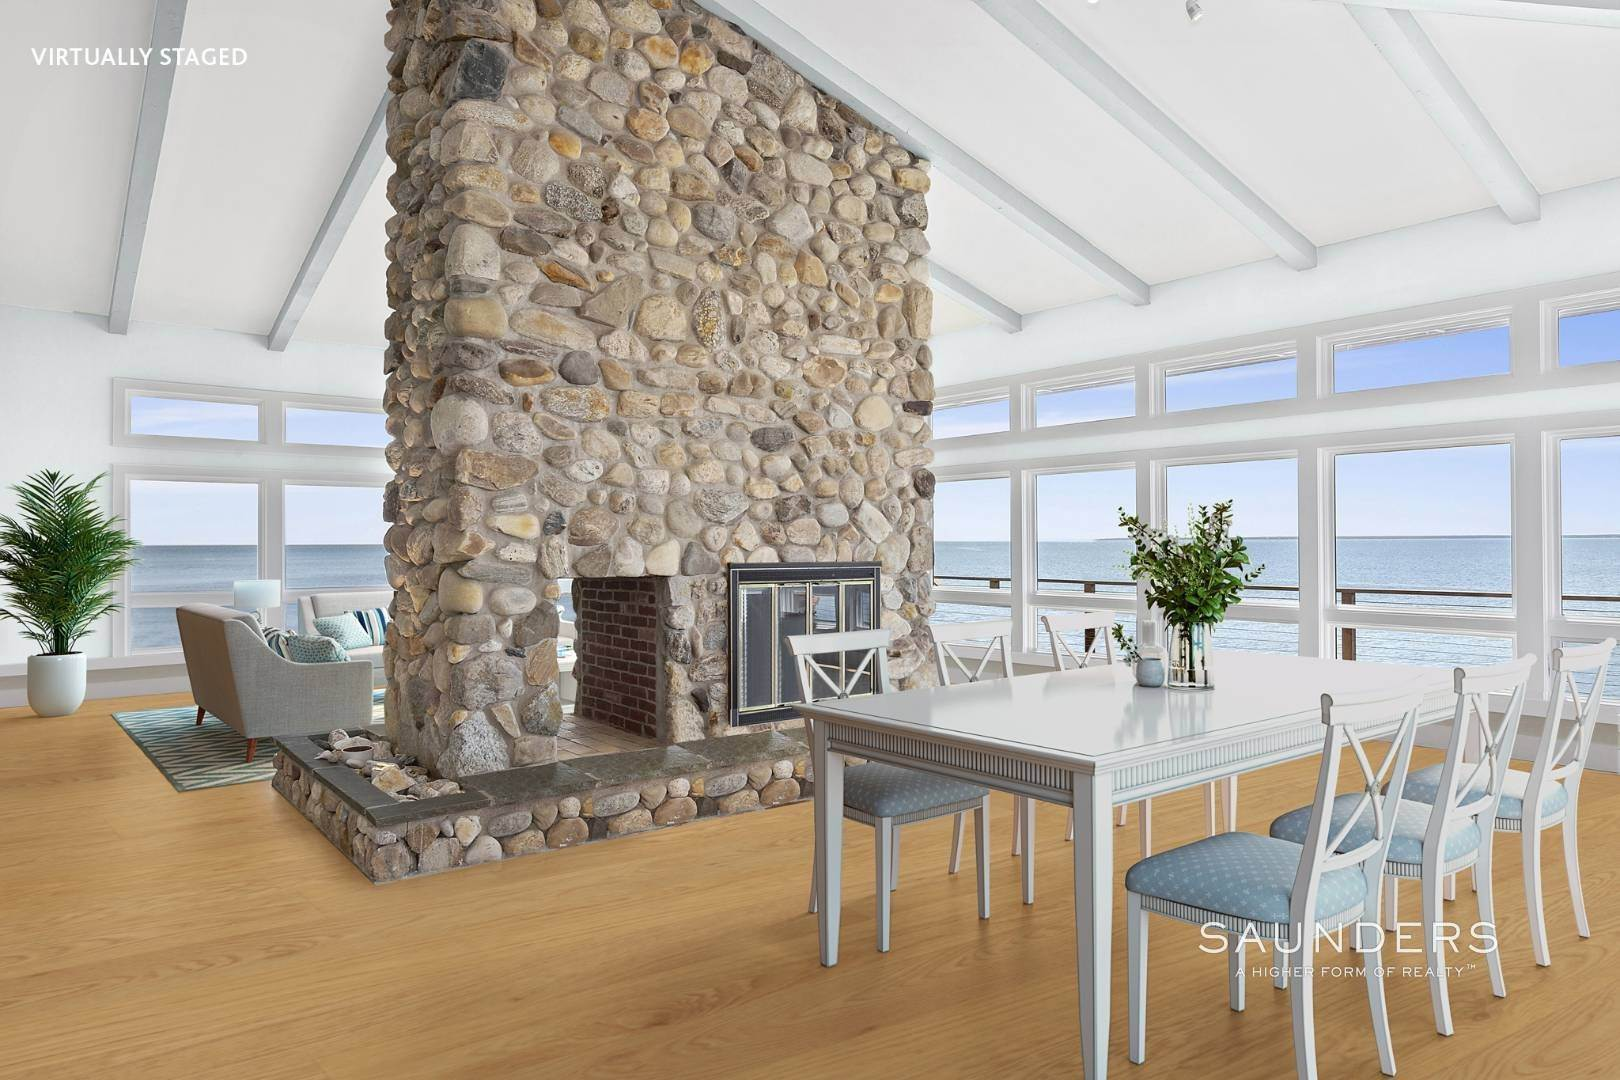 11. Single Family Homes for Sale at Shelter Island Mid Century Modern Beach House With Pool Shelter Island Heights, Shelter Island, NY 11964